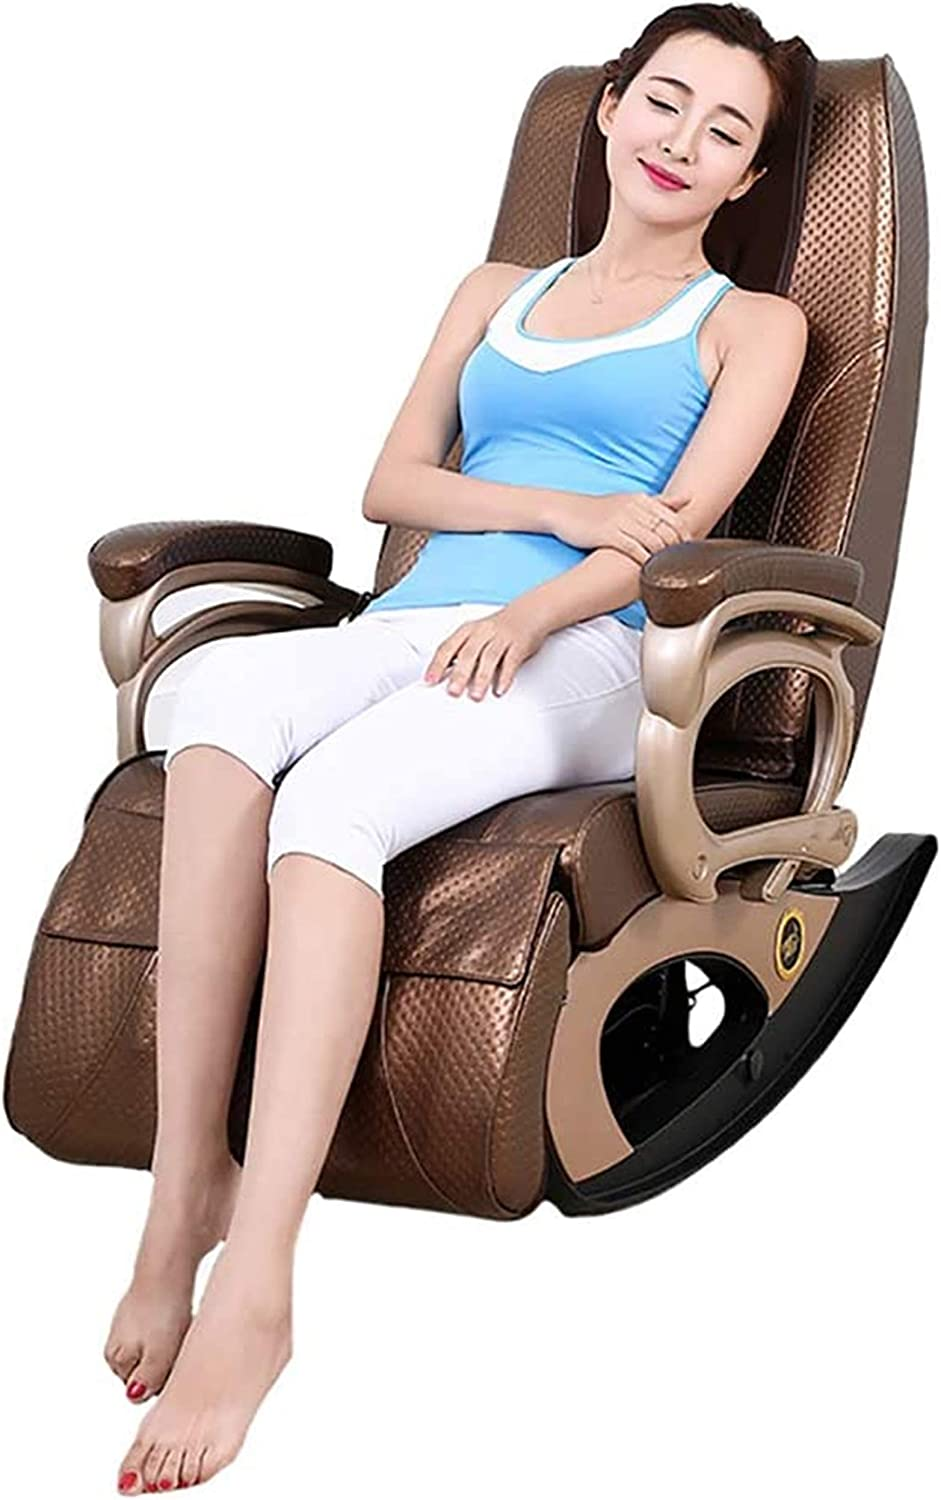 Smart massage chair, Home Multi-Function Sofa ir Cervical Vertebra Health Massager, Suitable For Legs, Neck, Head, Back Rocking Heating Function-outdoor patio leisure comfortable ,Adult massage chair